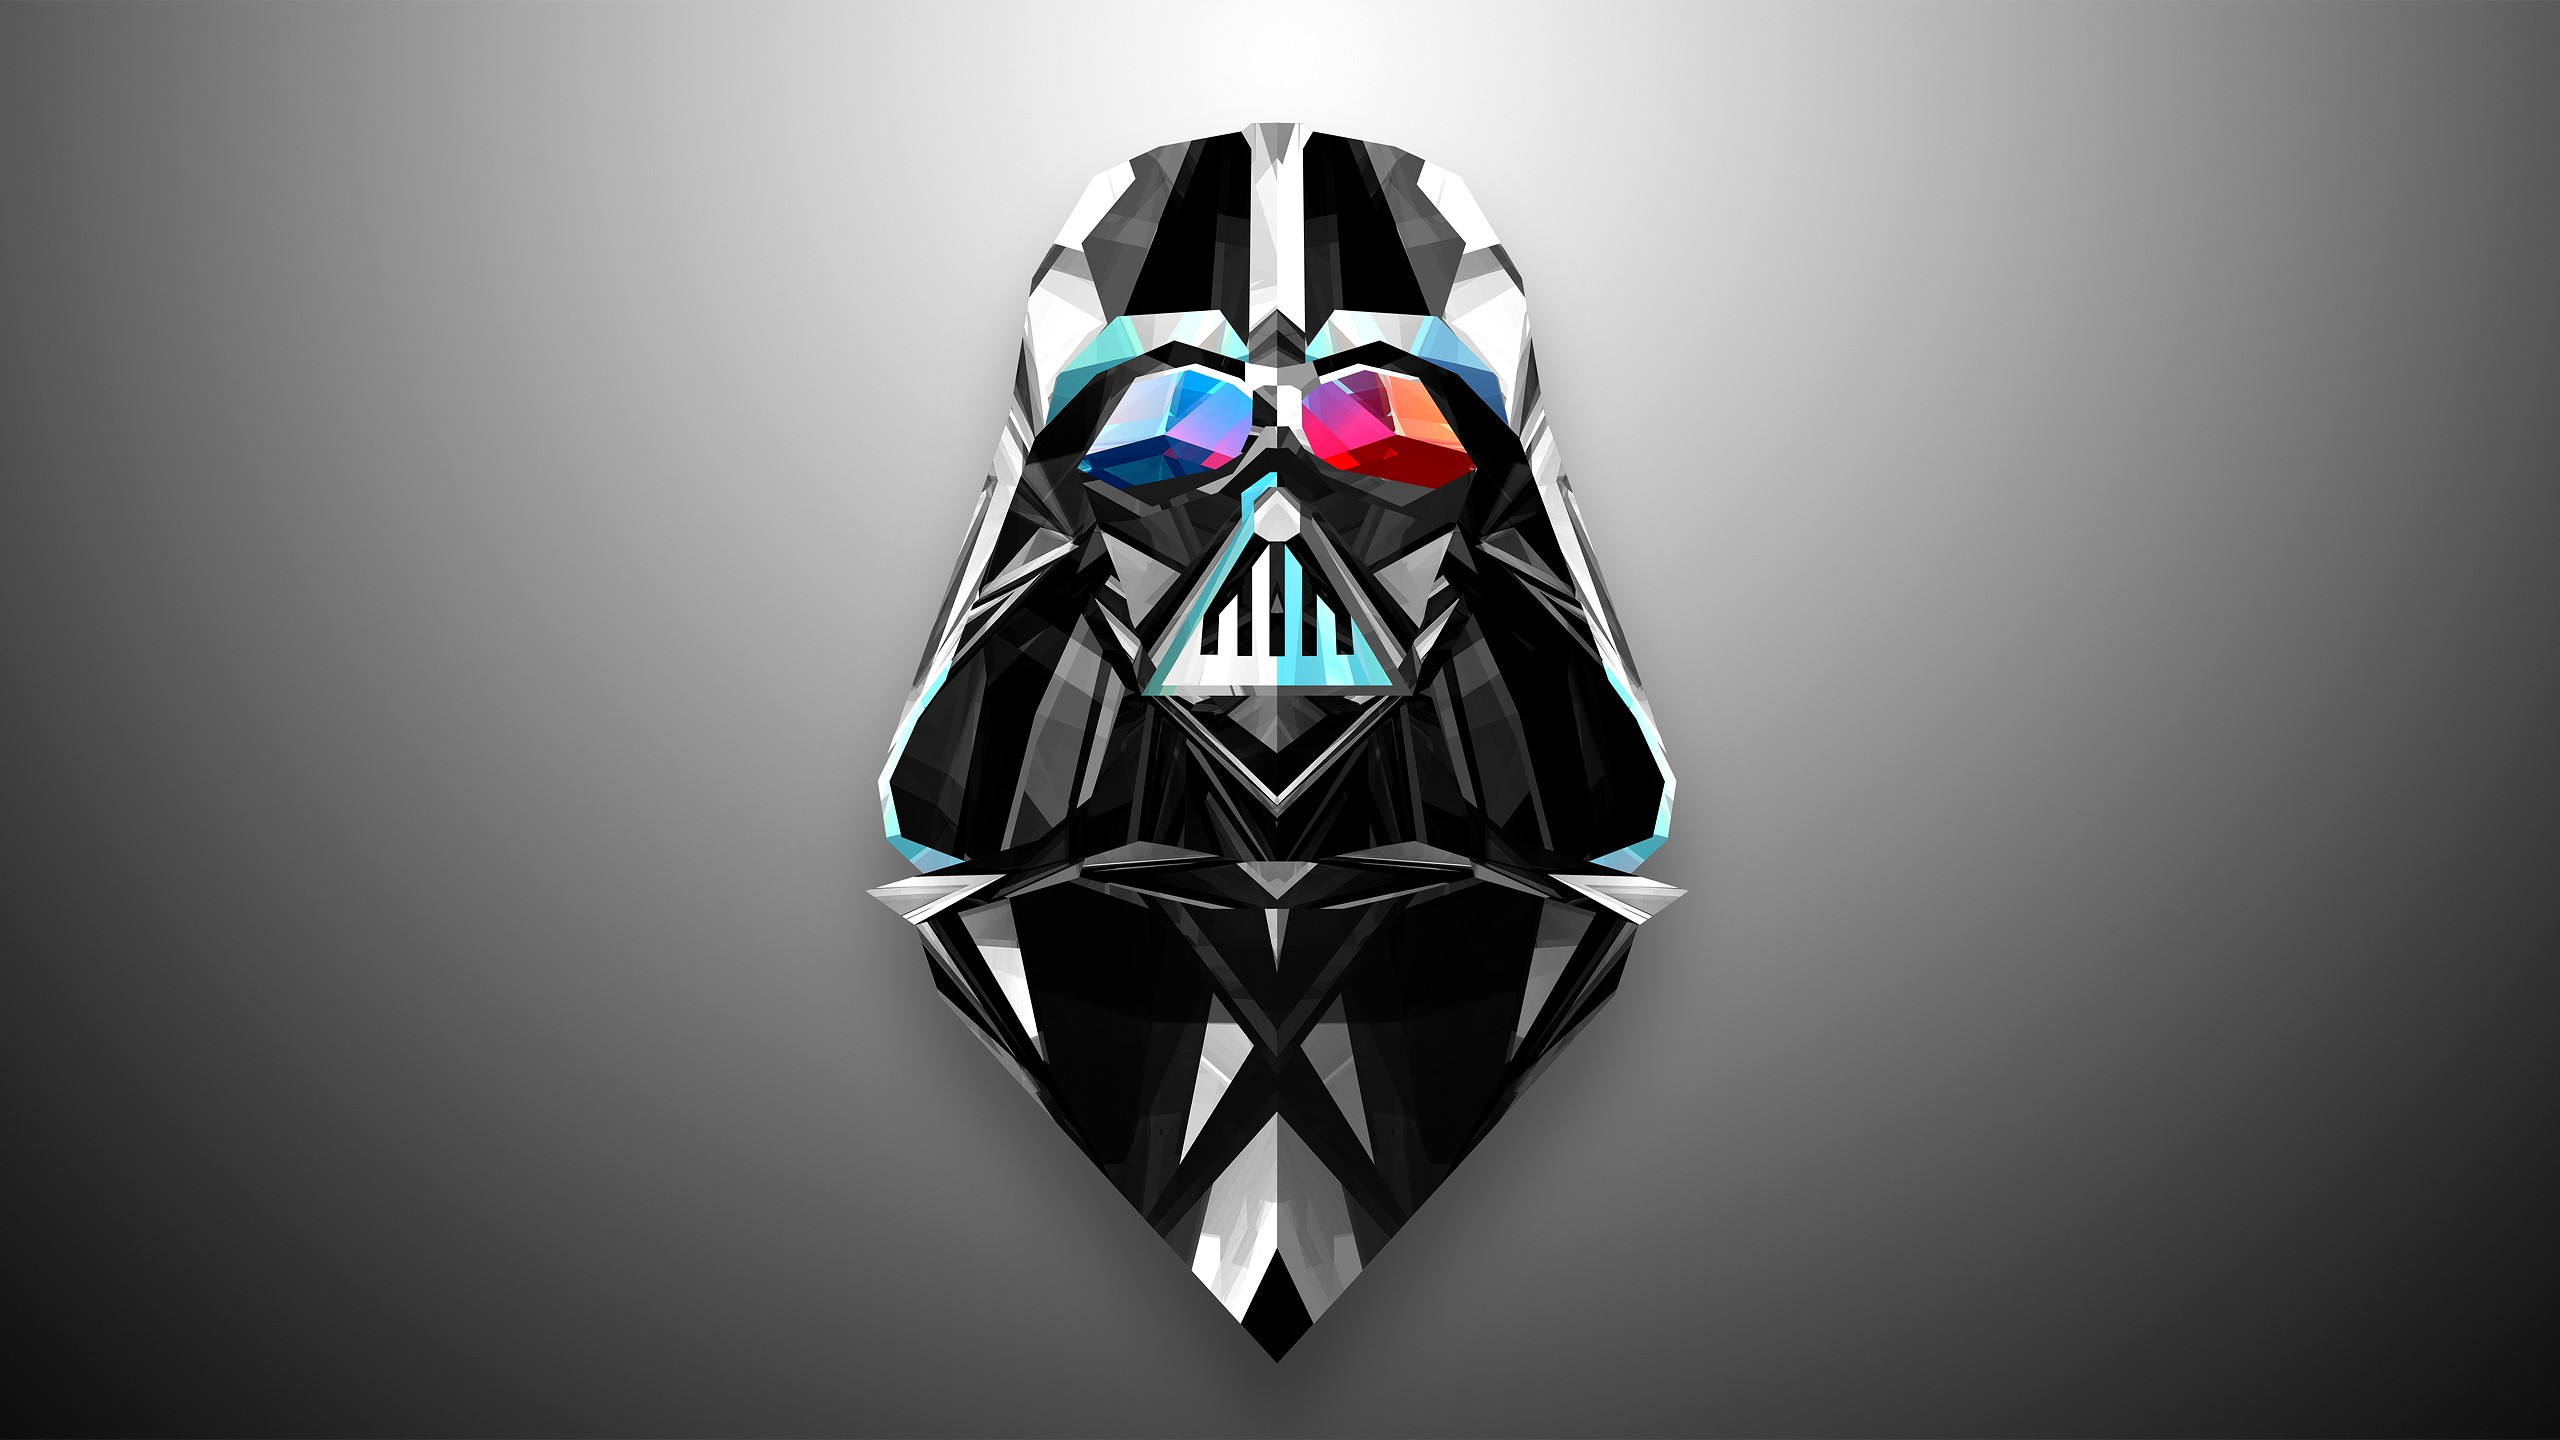 Awesome Star Wars Wallpapers 2560x1440